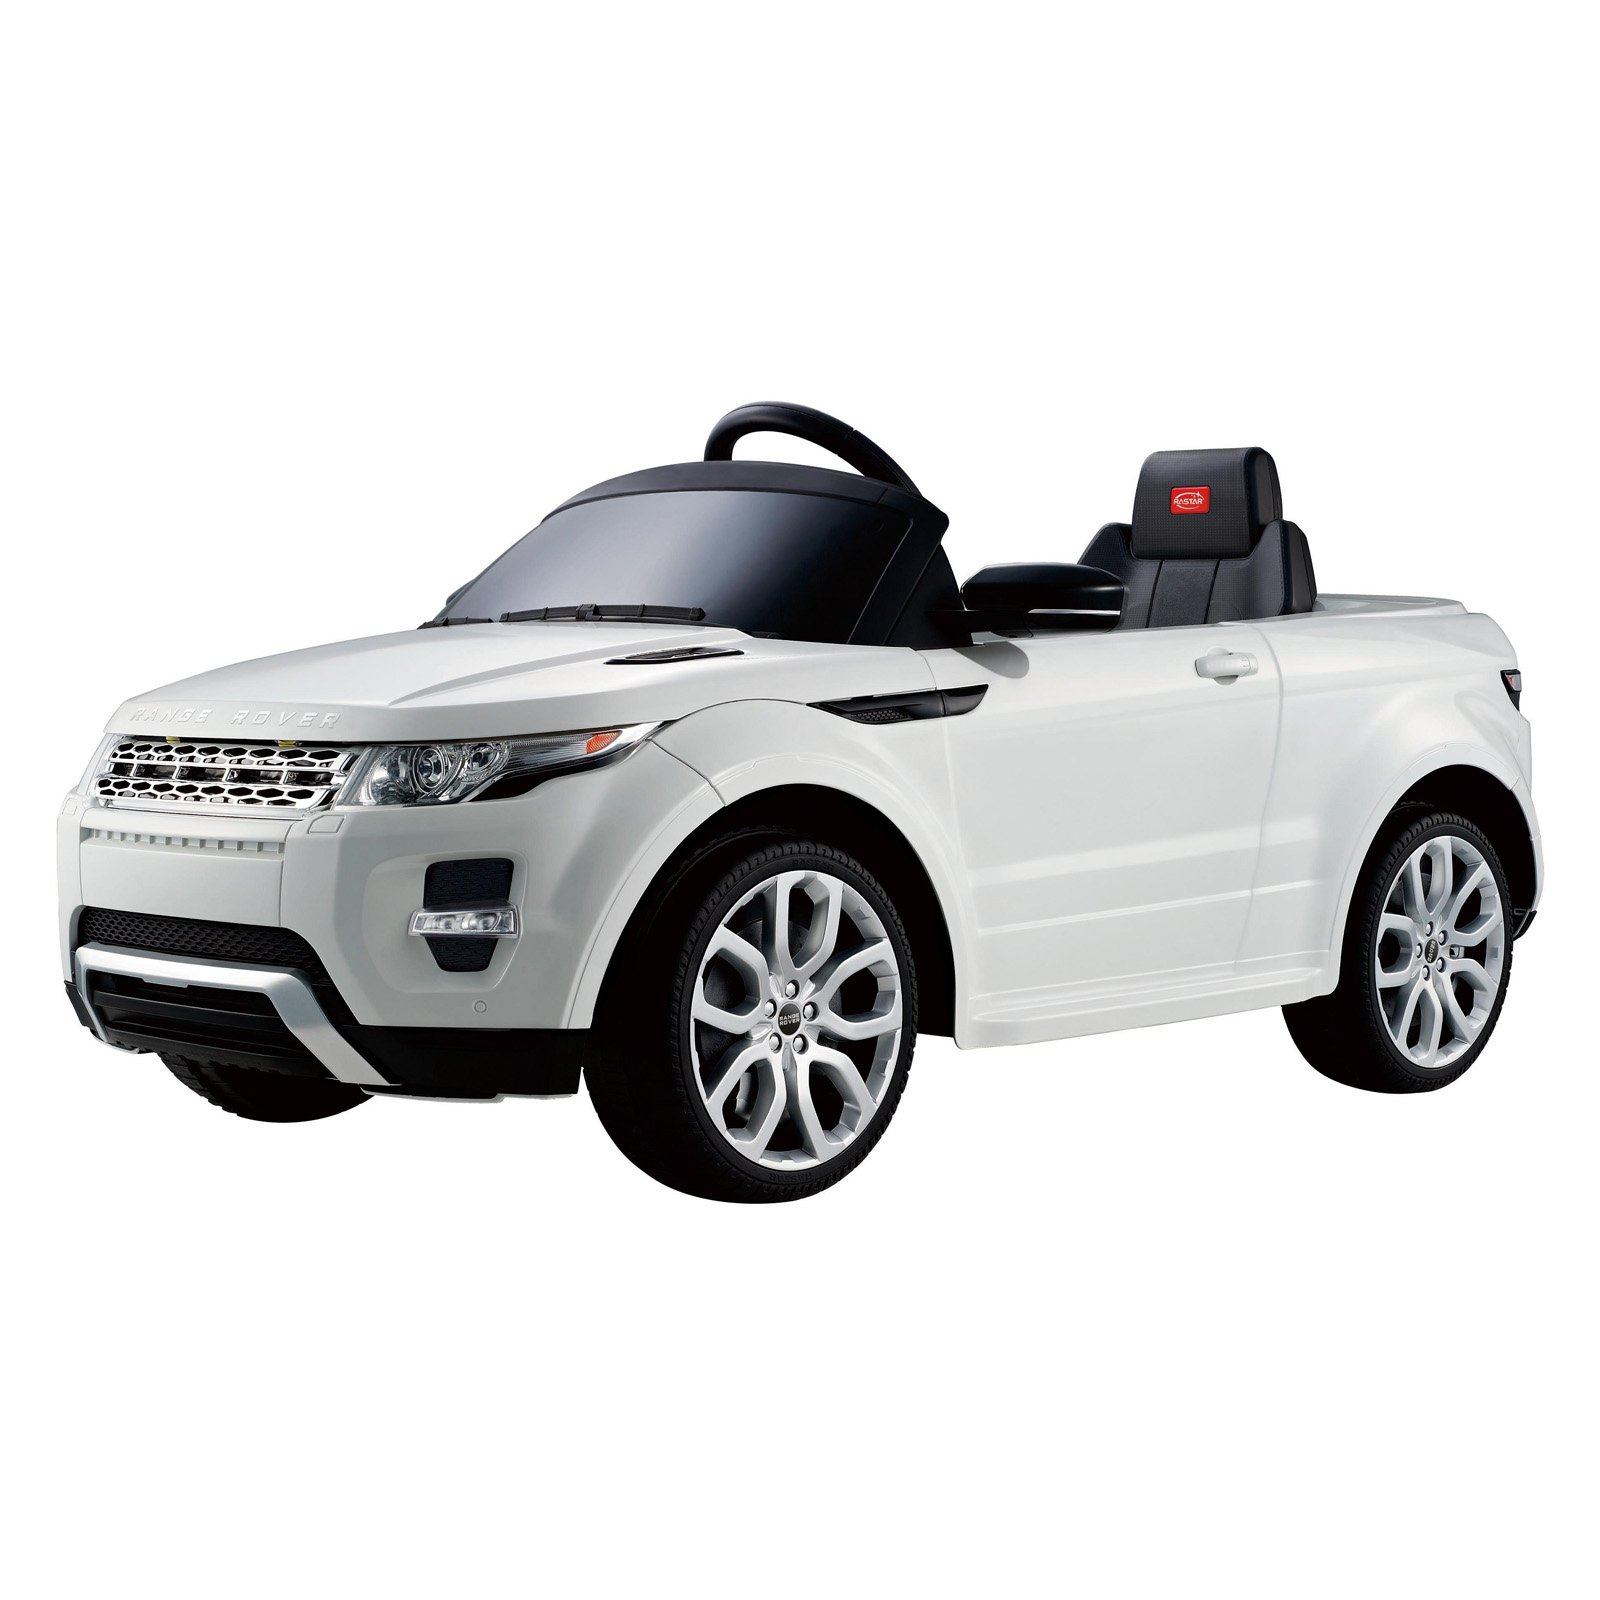 Range Rover Evoque 12V Ride-On, White